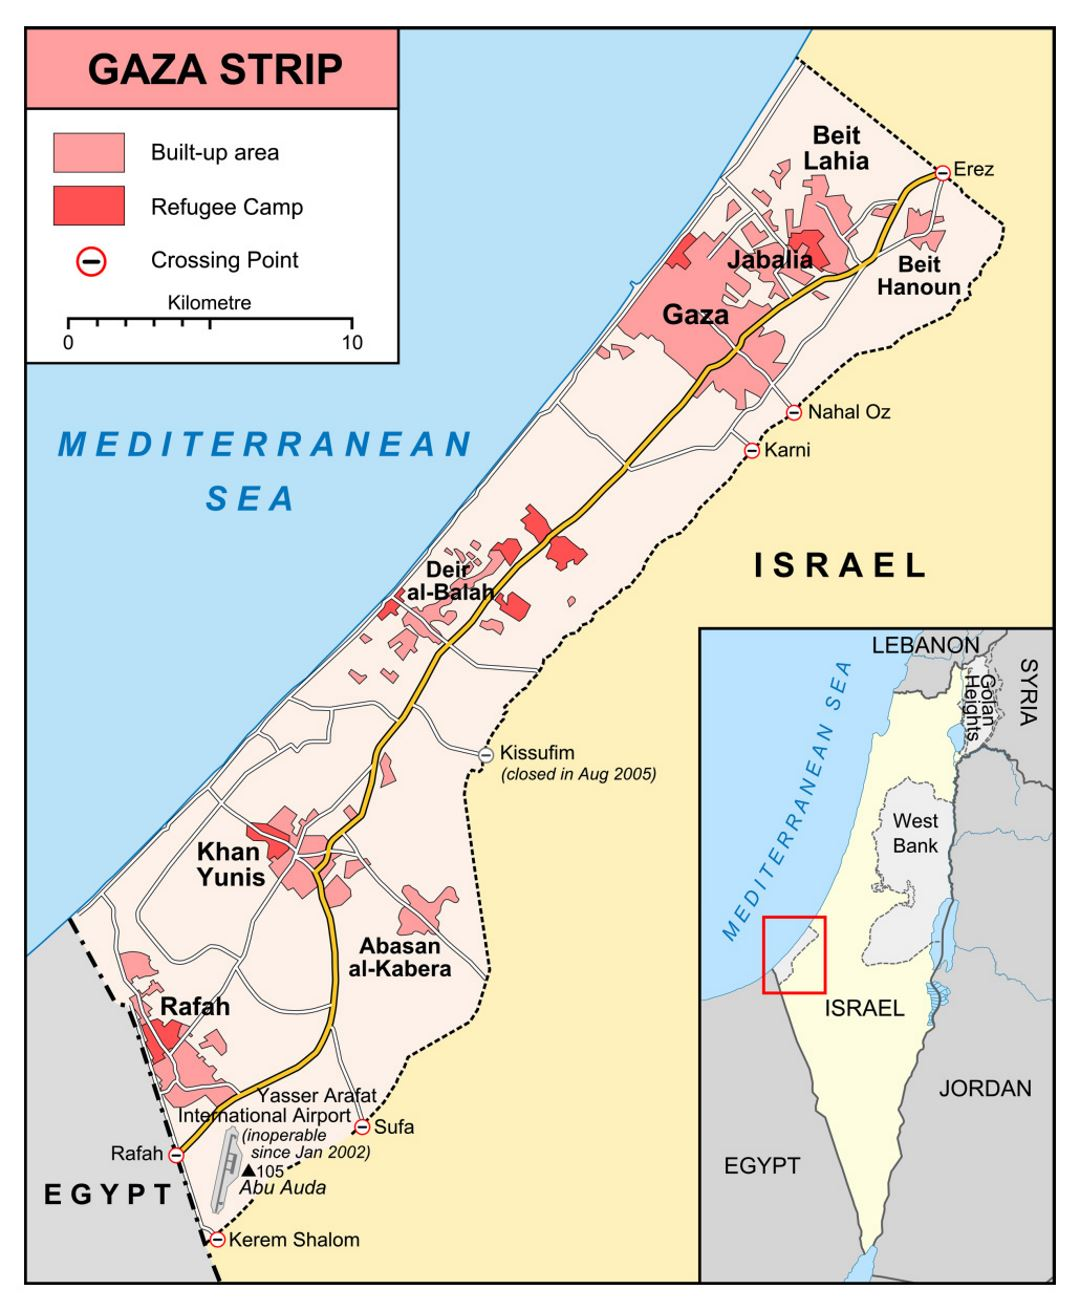 Detailed map of Gaza Strip with roads and cities